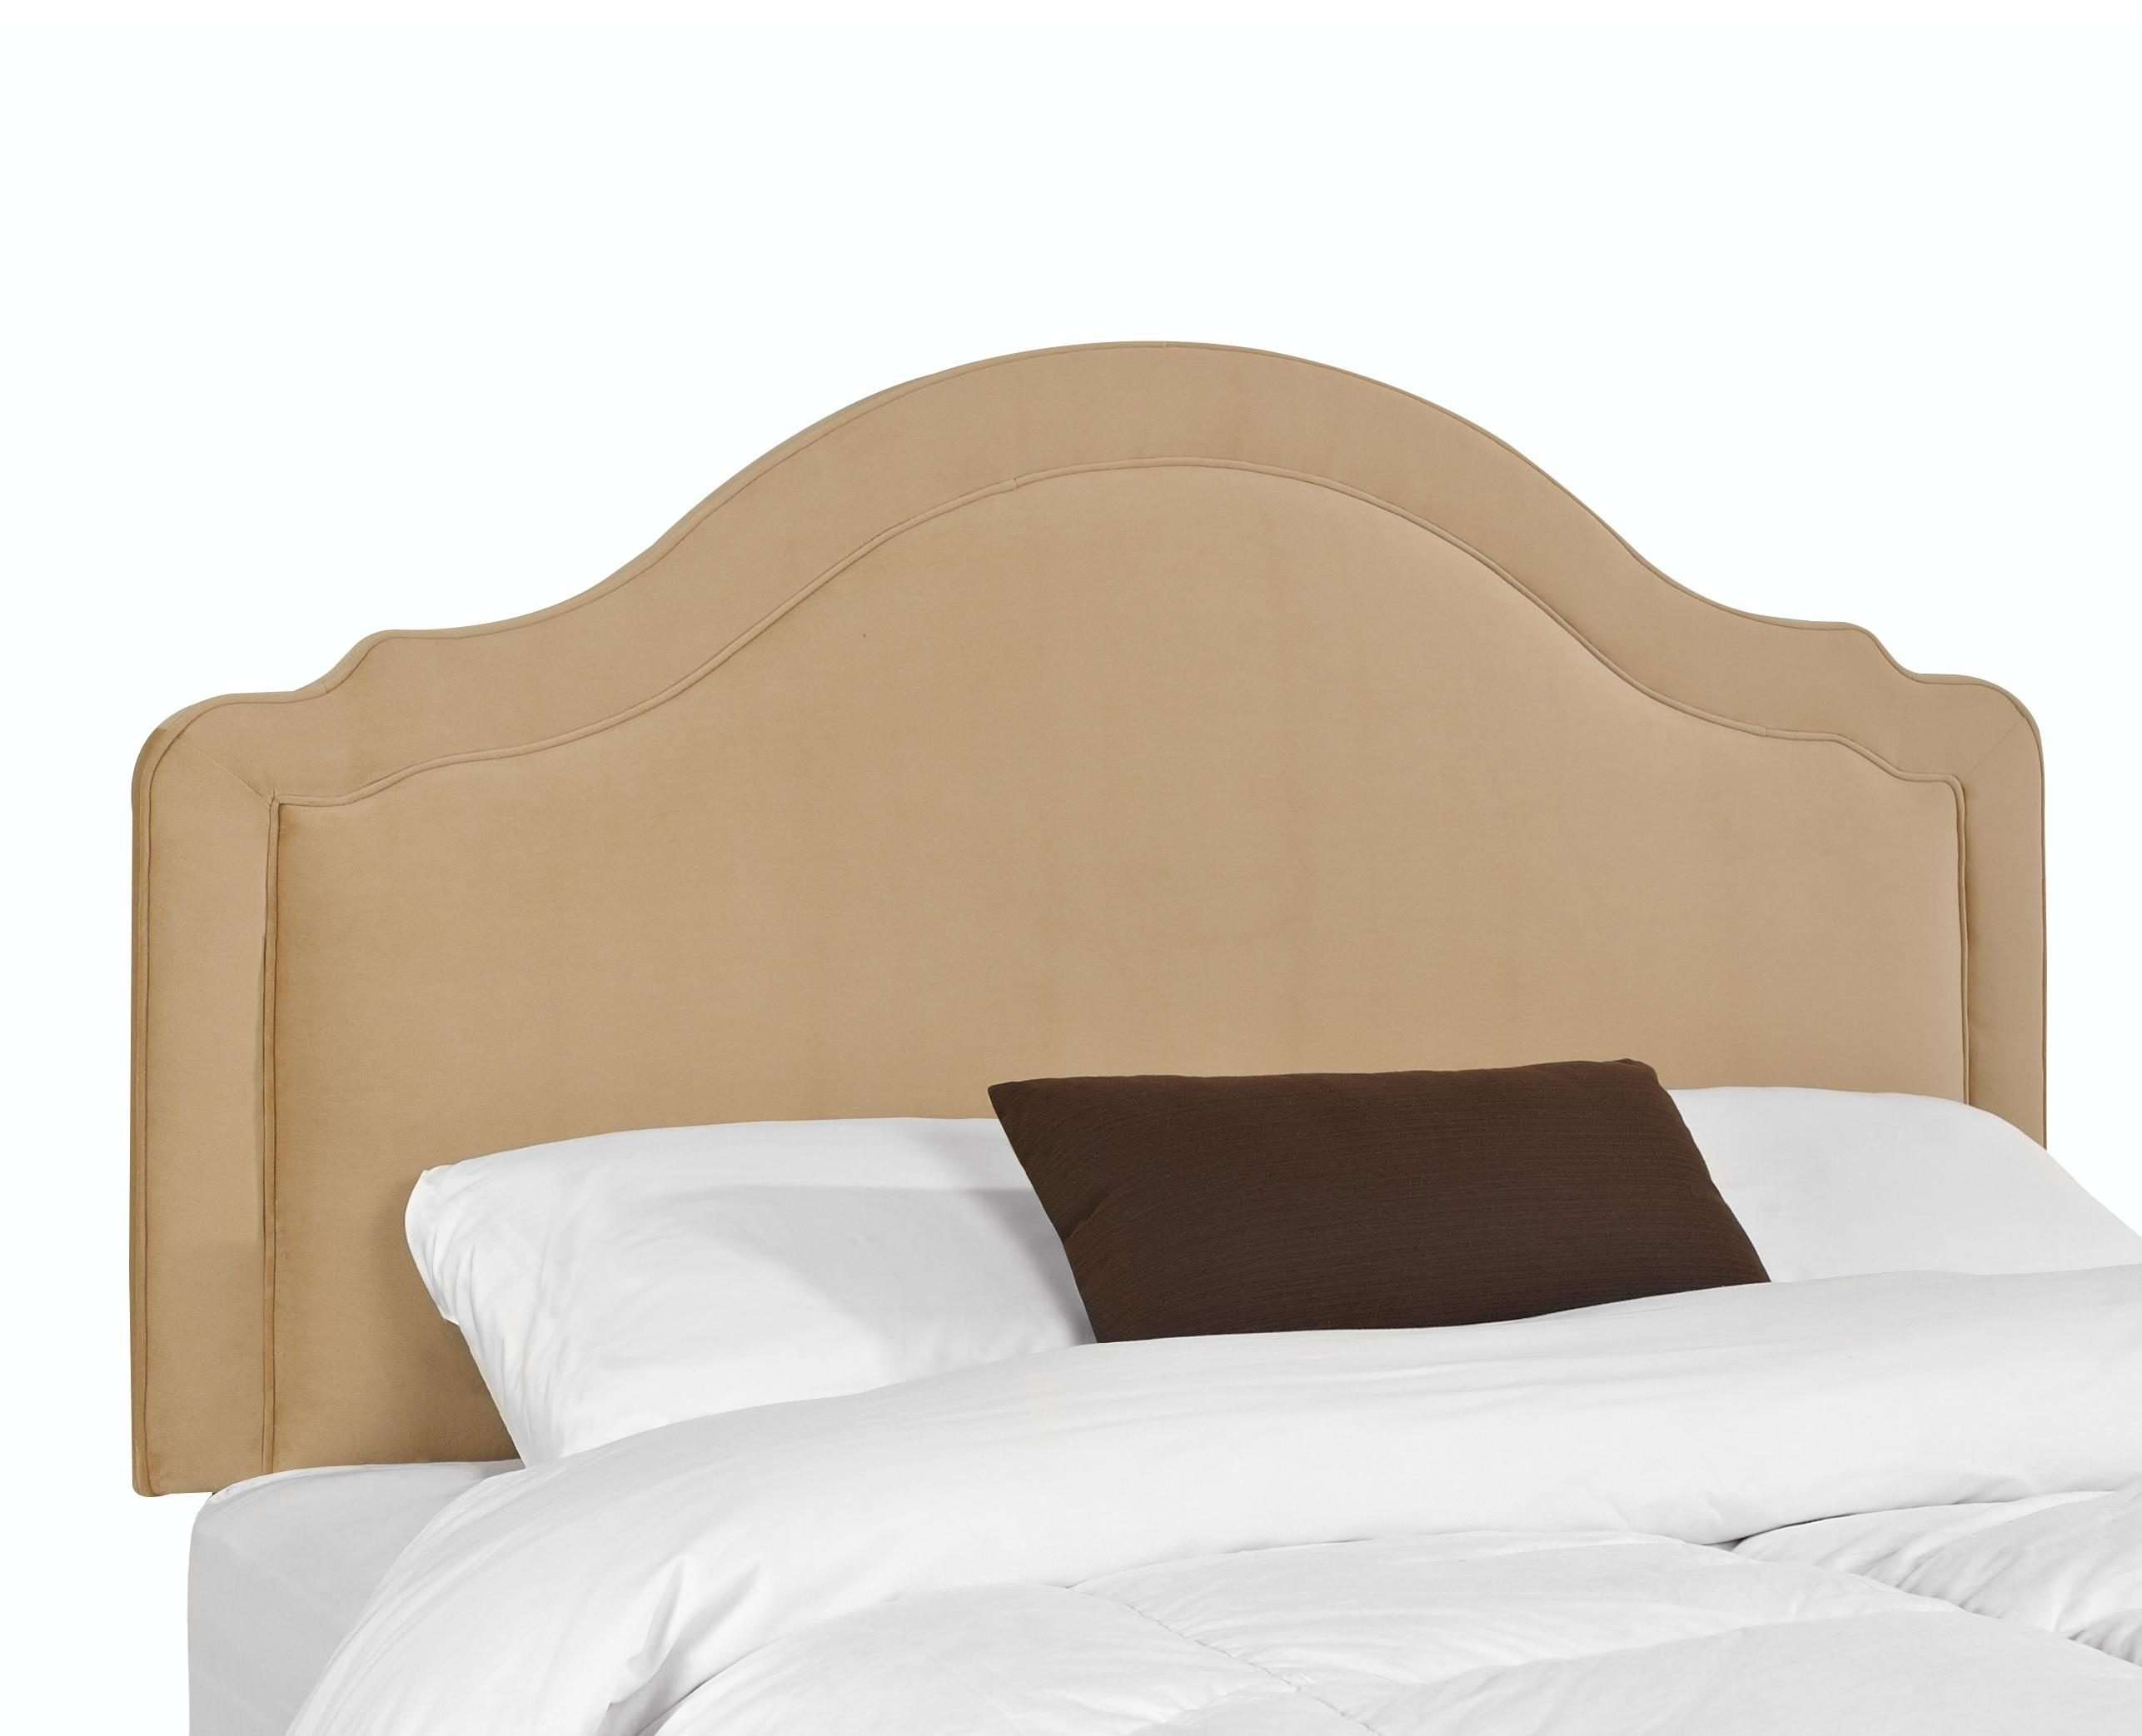 Upholstered Beds And Headboards Rabin Twin Headboard With Arched Top By Klaussner Wolf Furniture